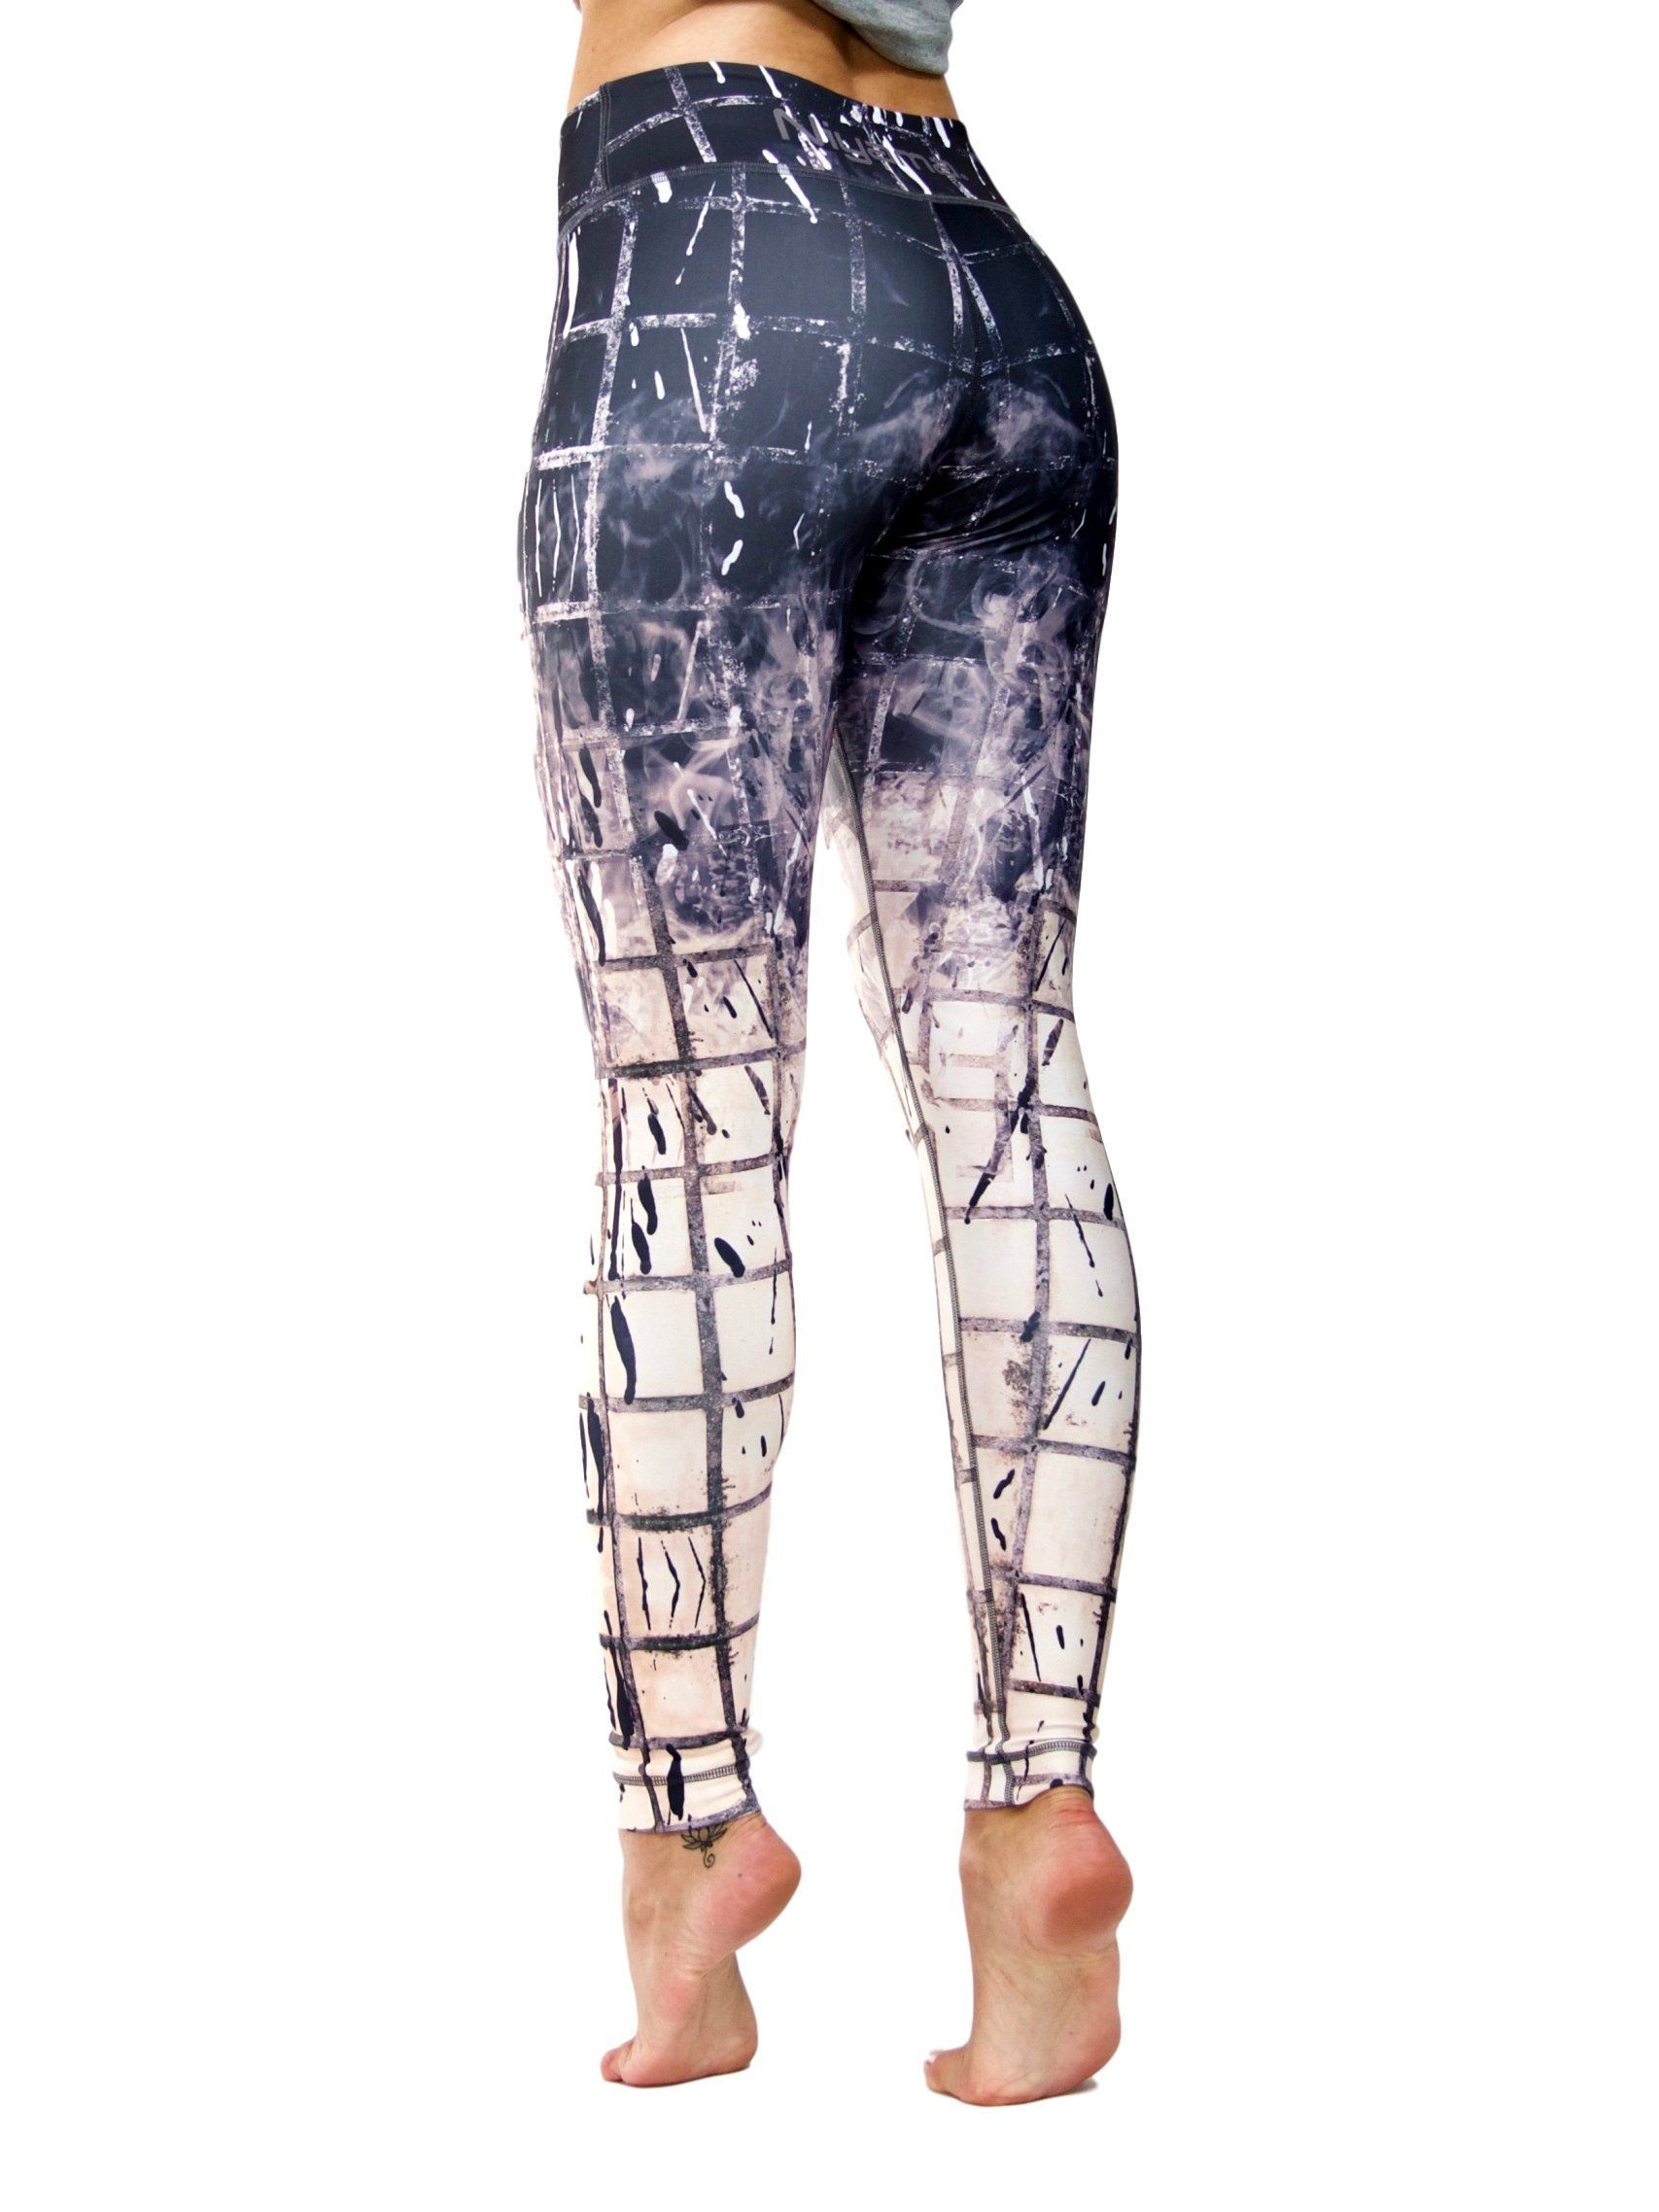 Black And White Yoga Pants lw5qZQJZ